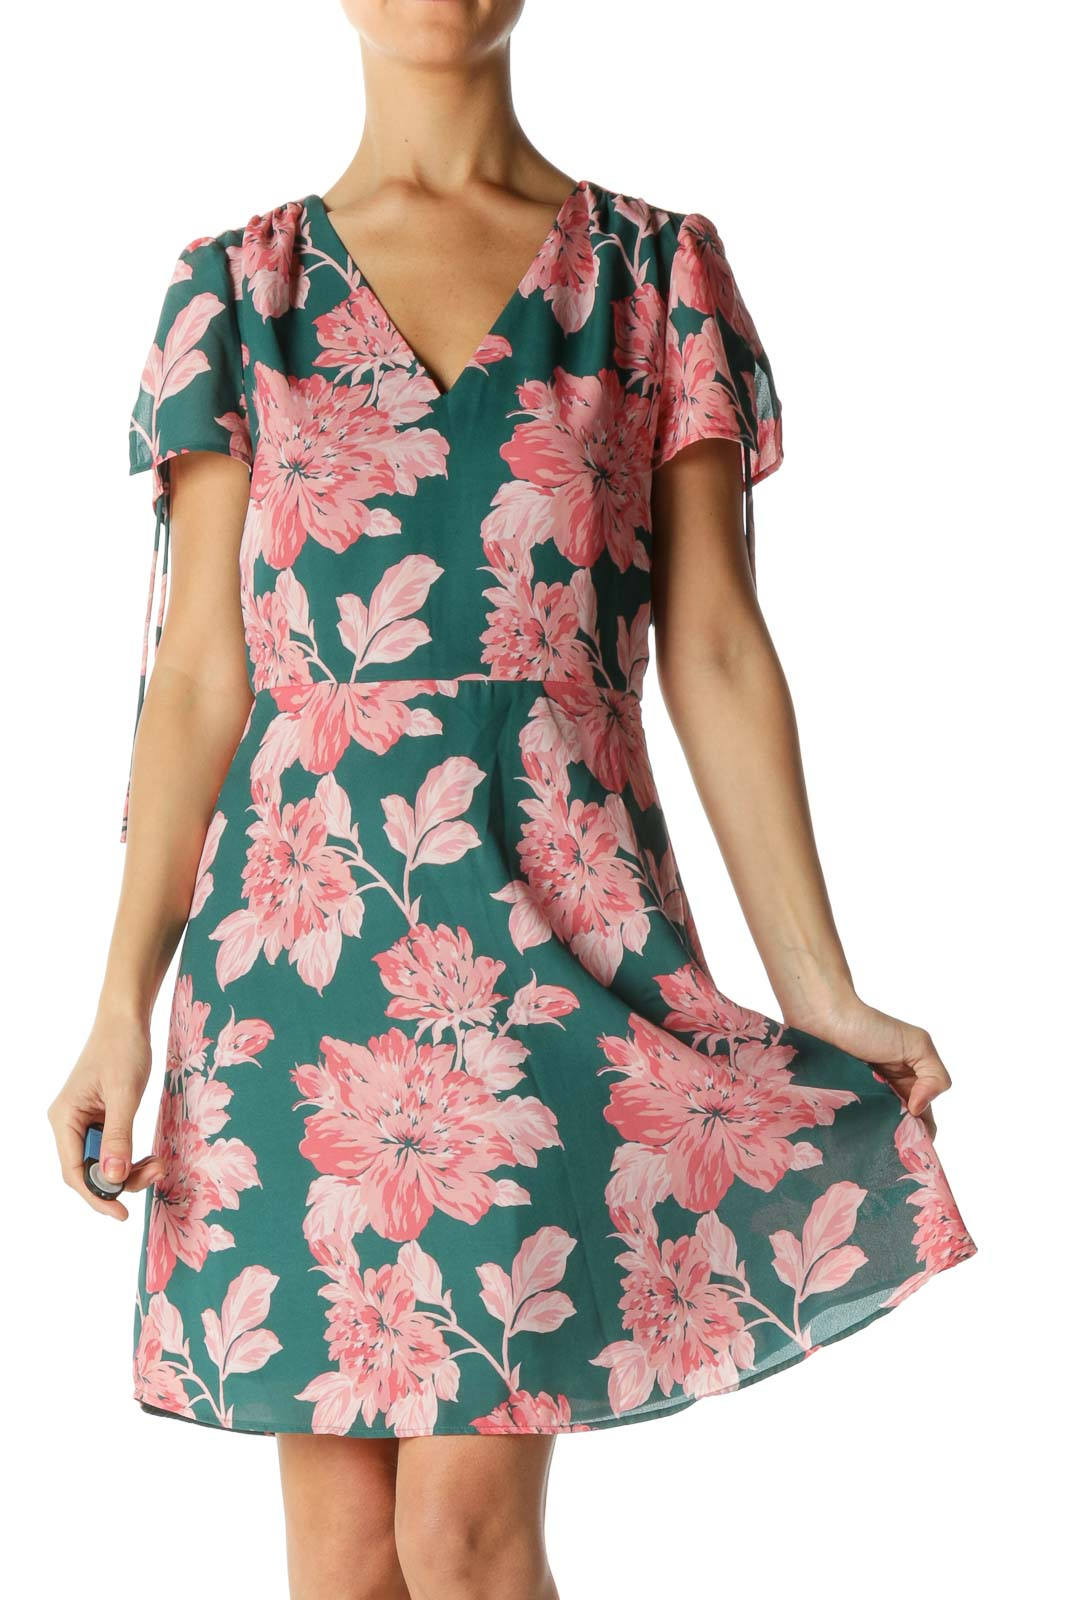 Green and Pink Floral Print Dress Front